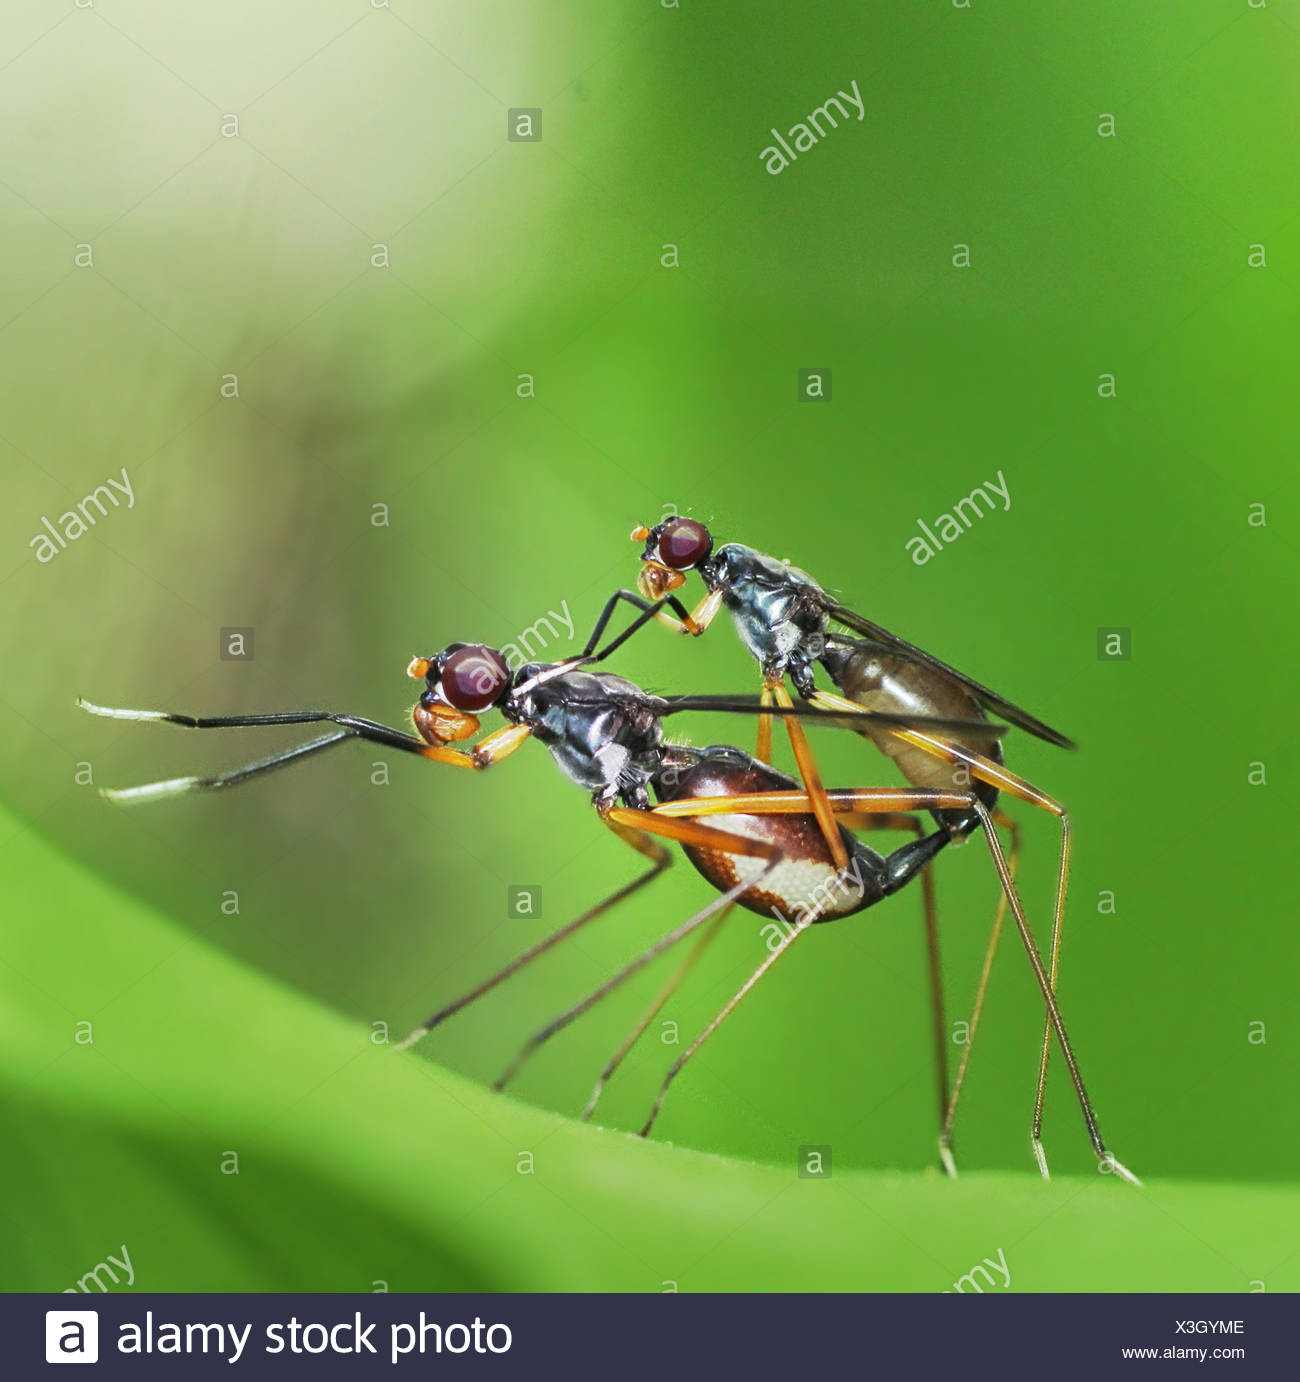 Mating insects - Stock Image